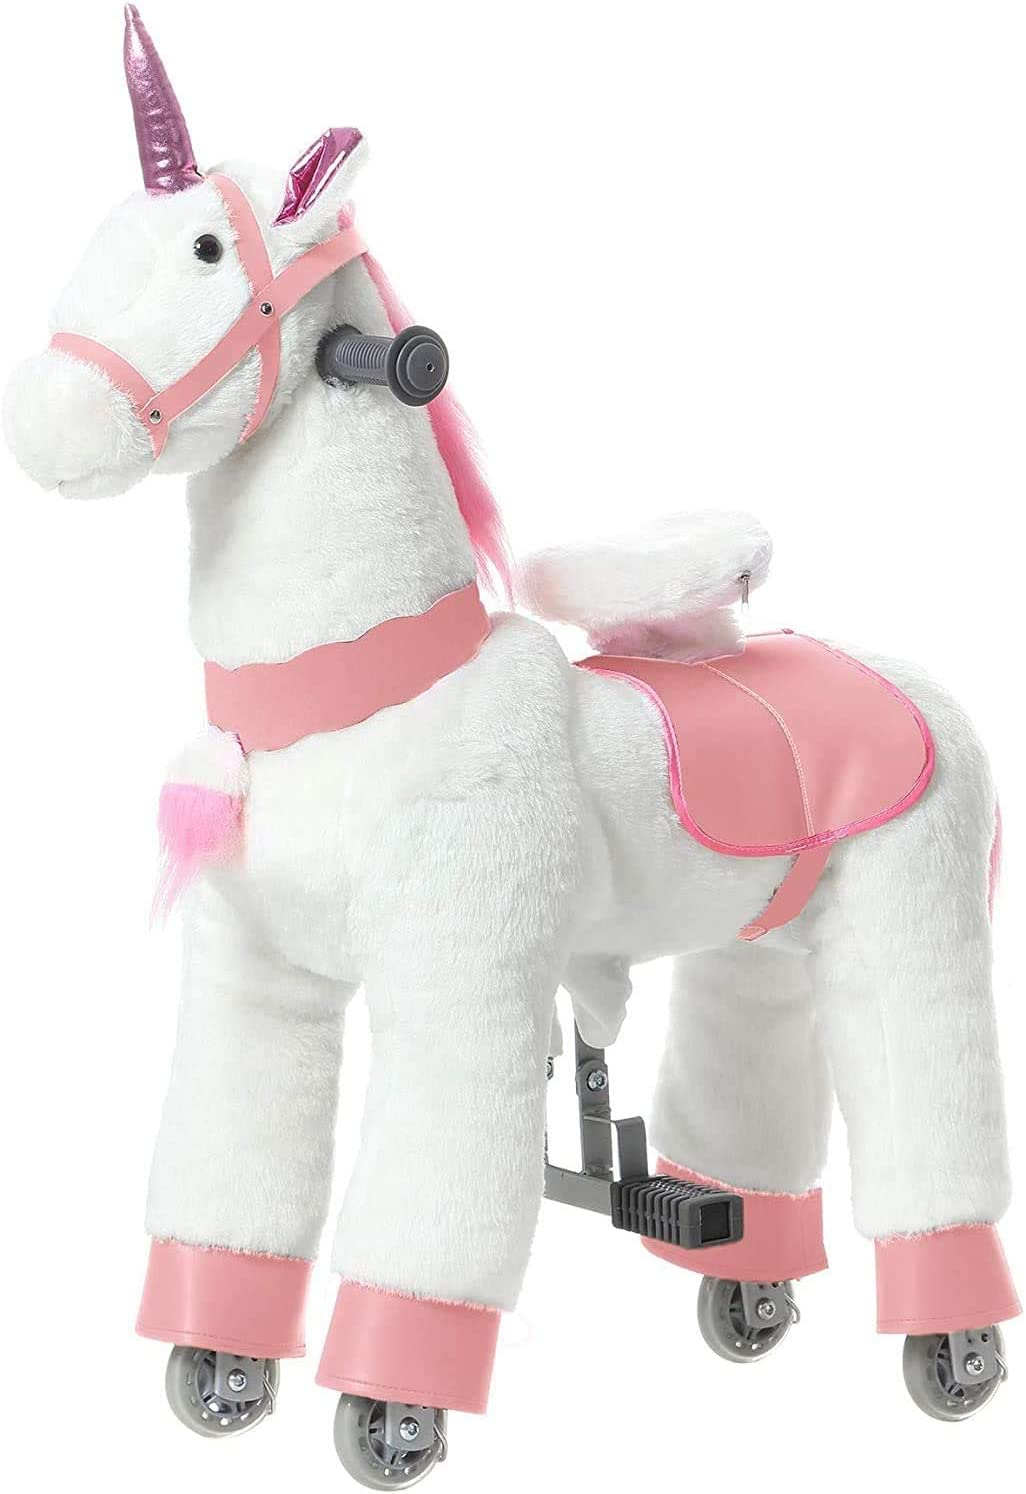 JoJoPooNy Ride New products world's highest quality popular on Unicorn NEW before selling Toy Years Ol 3-6 Kids for